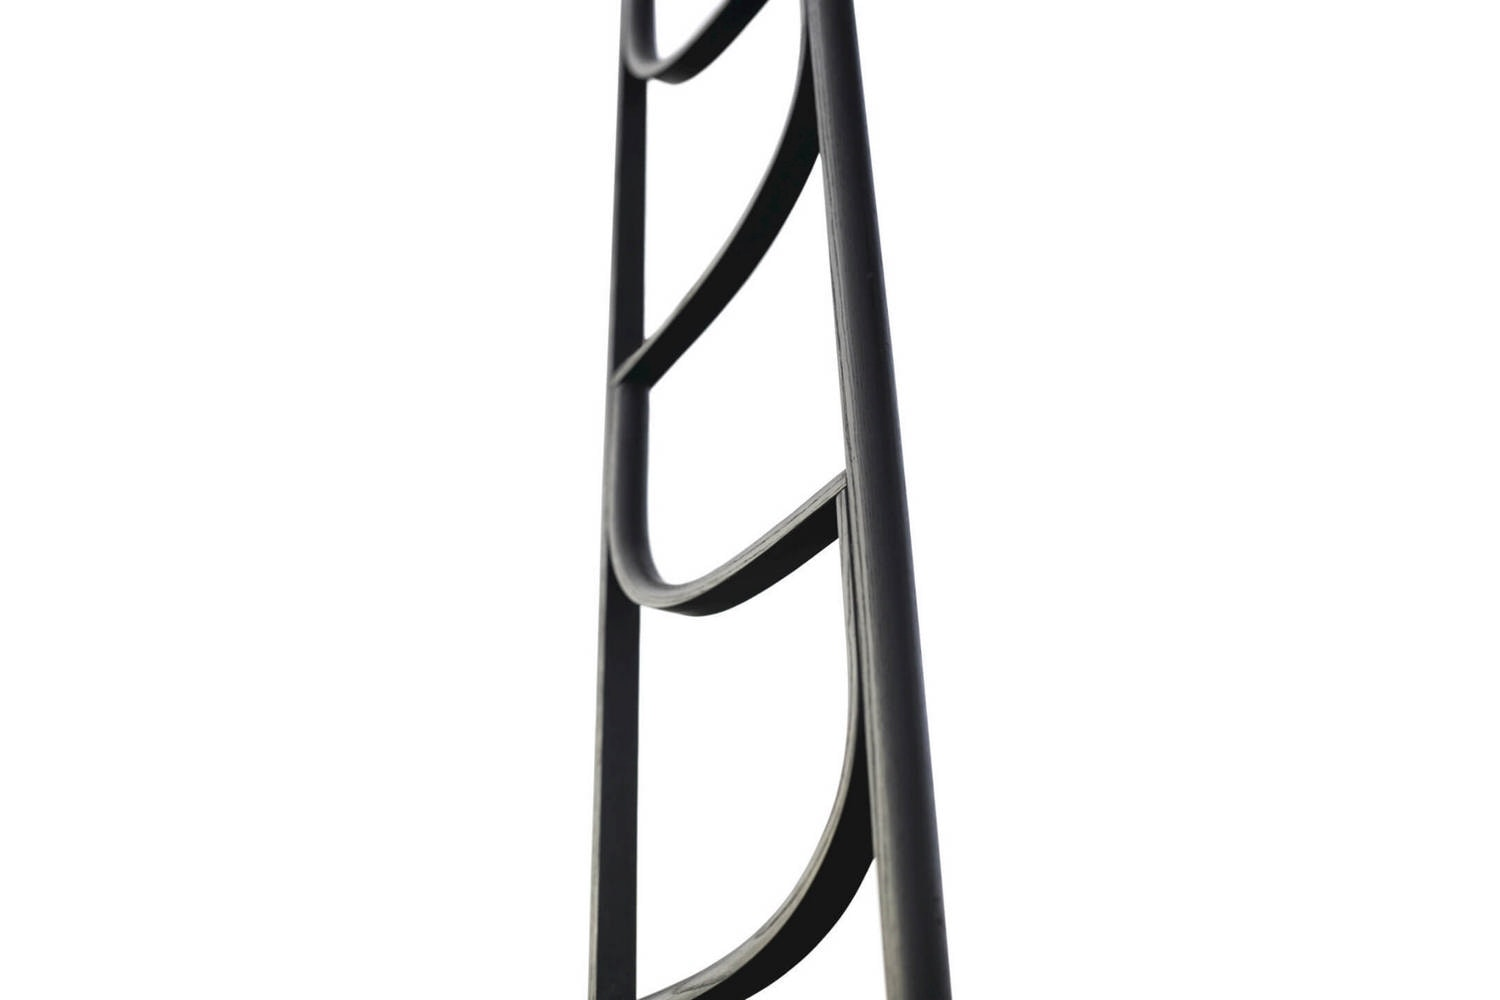 Ladder by Charlie Styrbjorn Nilsson for Gebruder Thonet Vienna GmbH